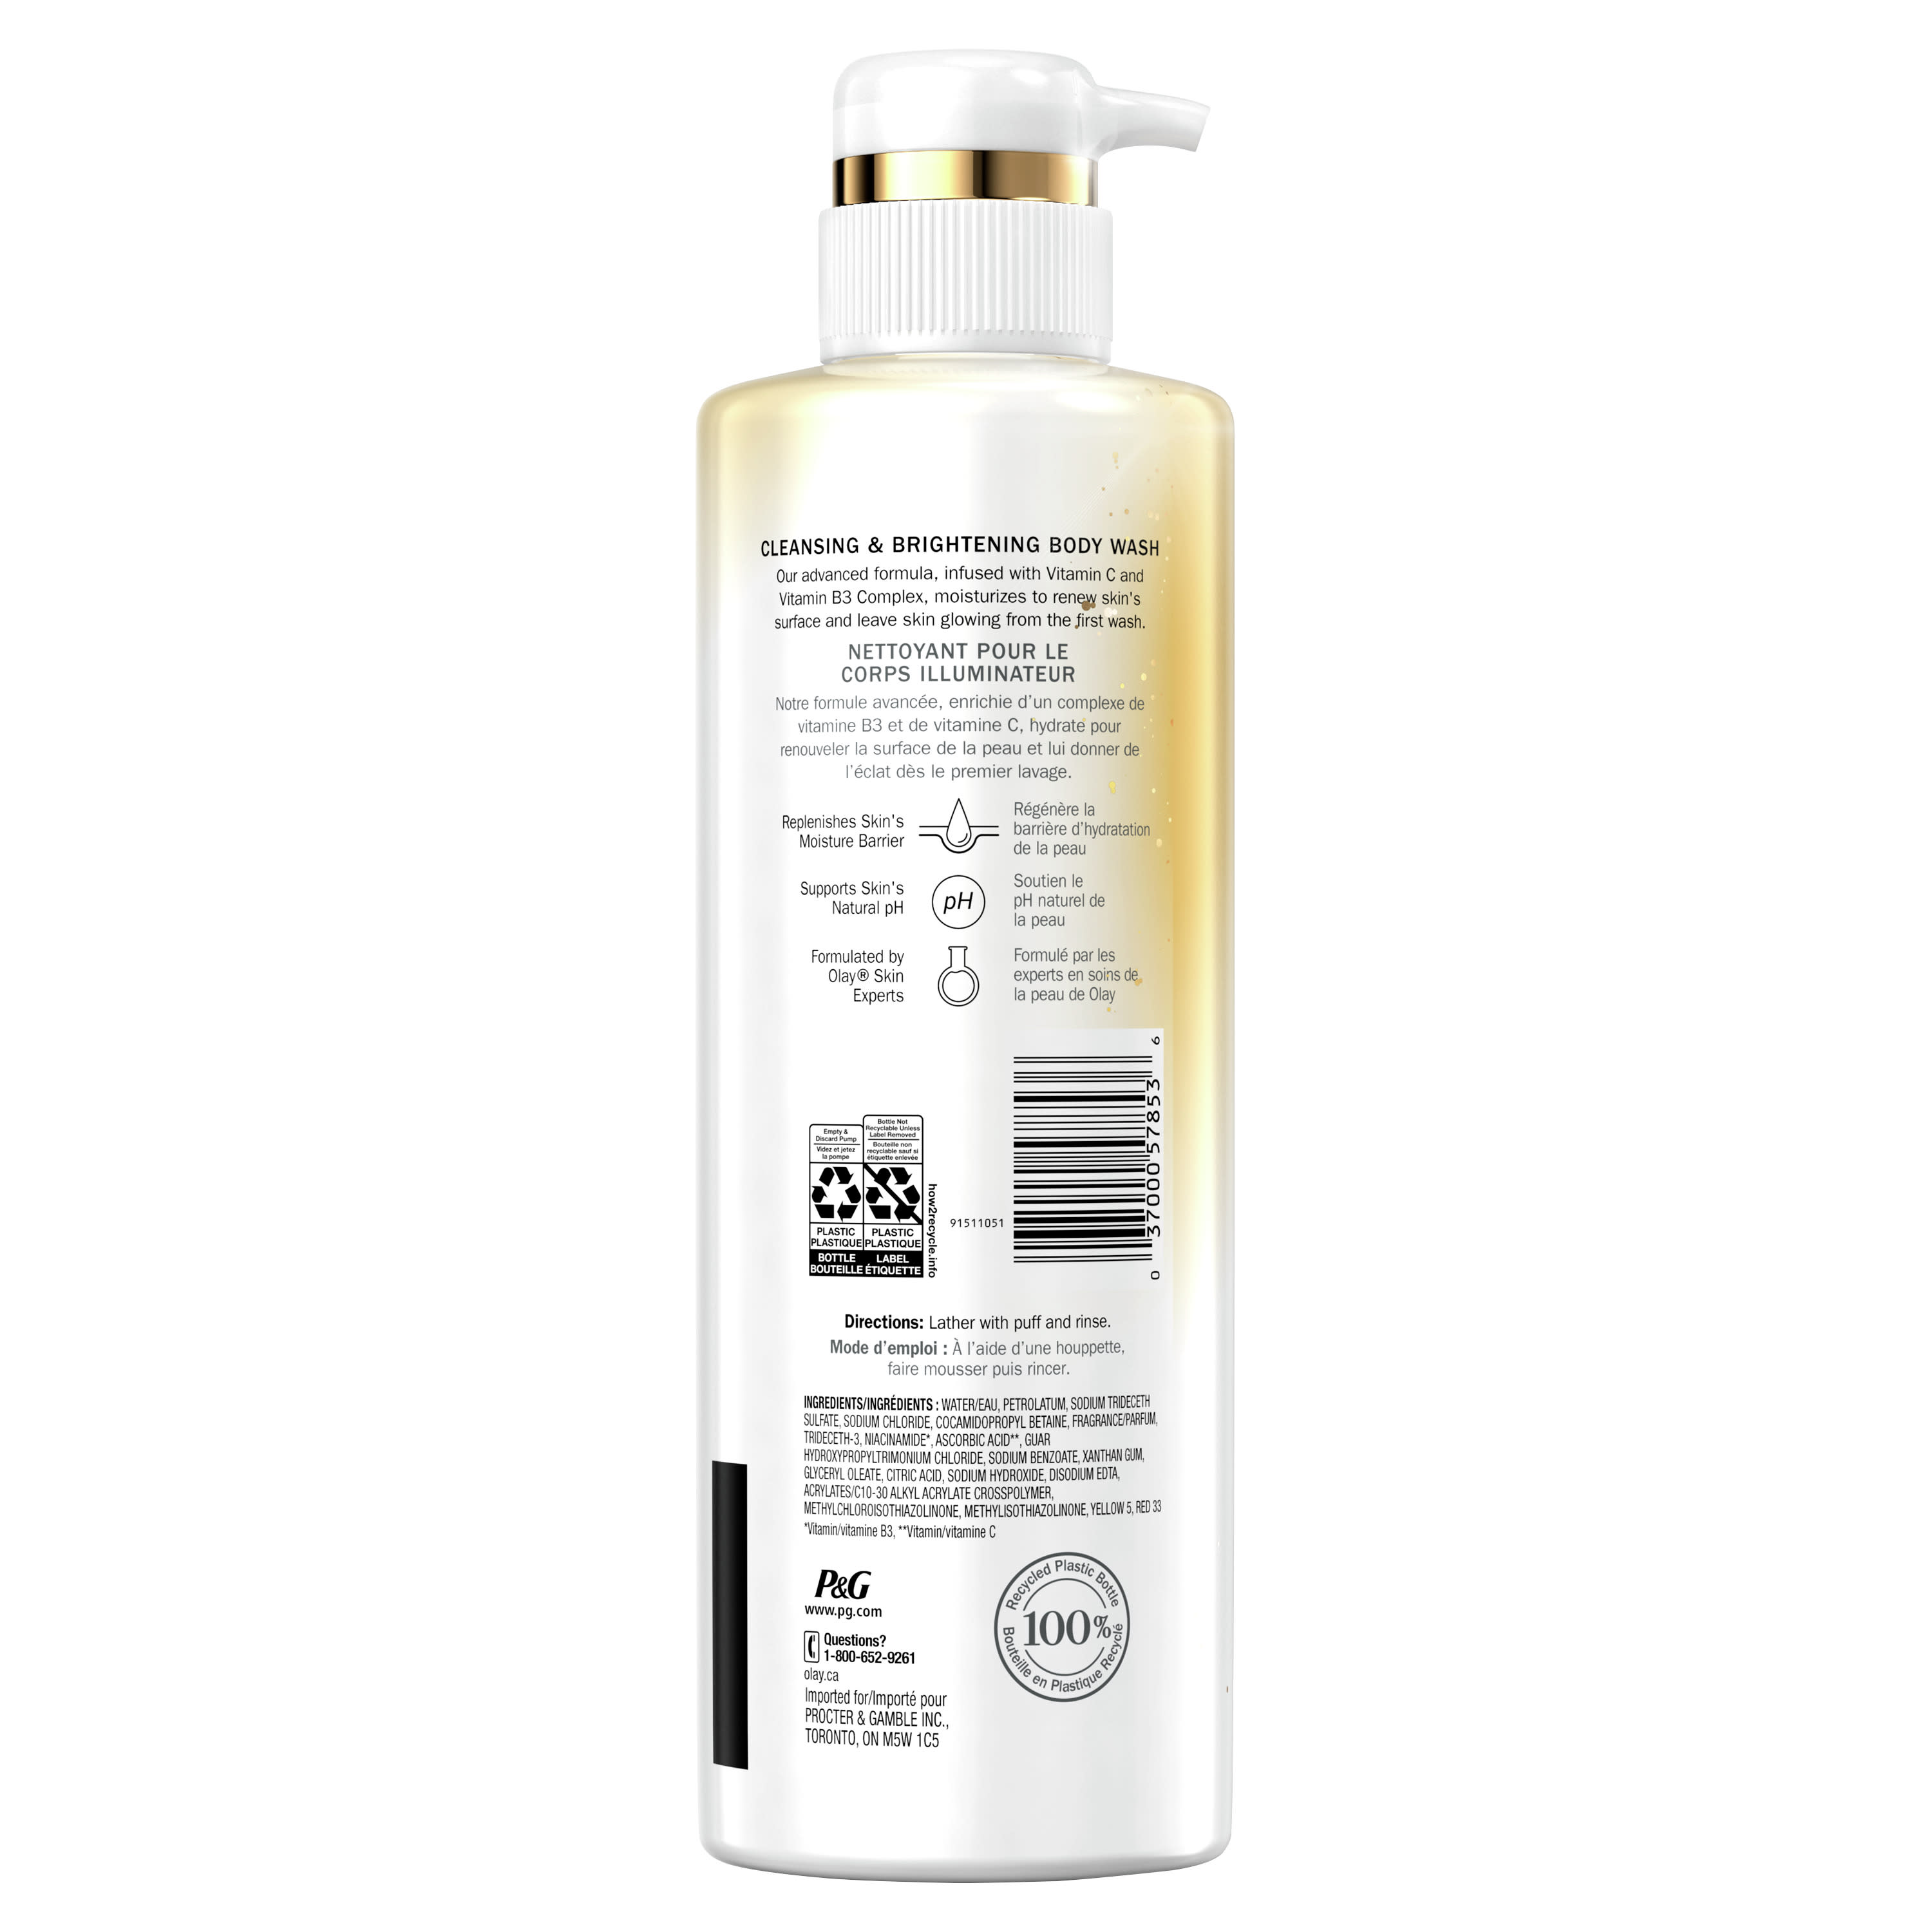 Olay Cleansing & Brightening Body Wash with Vitamin C and Vitamin B3 - 2